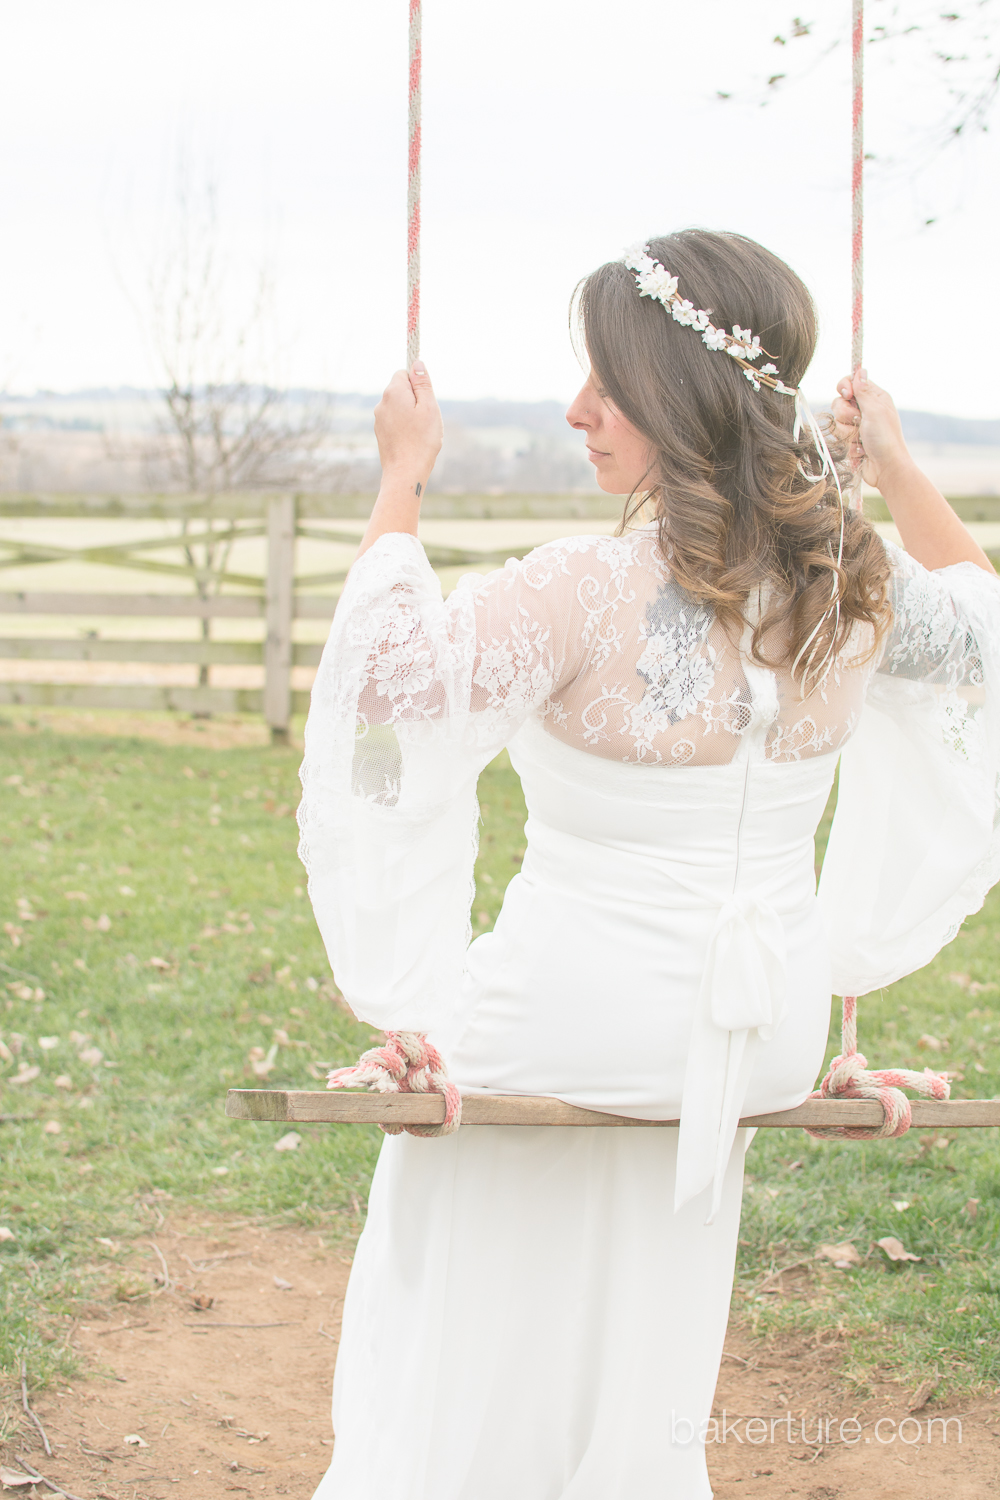 Walker's Overlook Wedding bride portrait rustic swing Photo